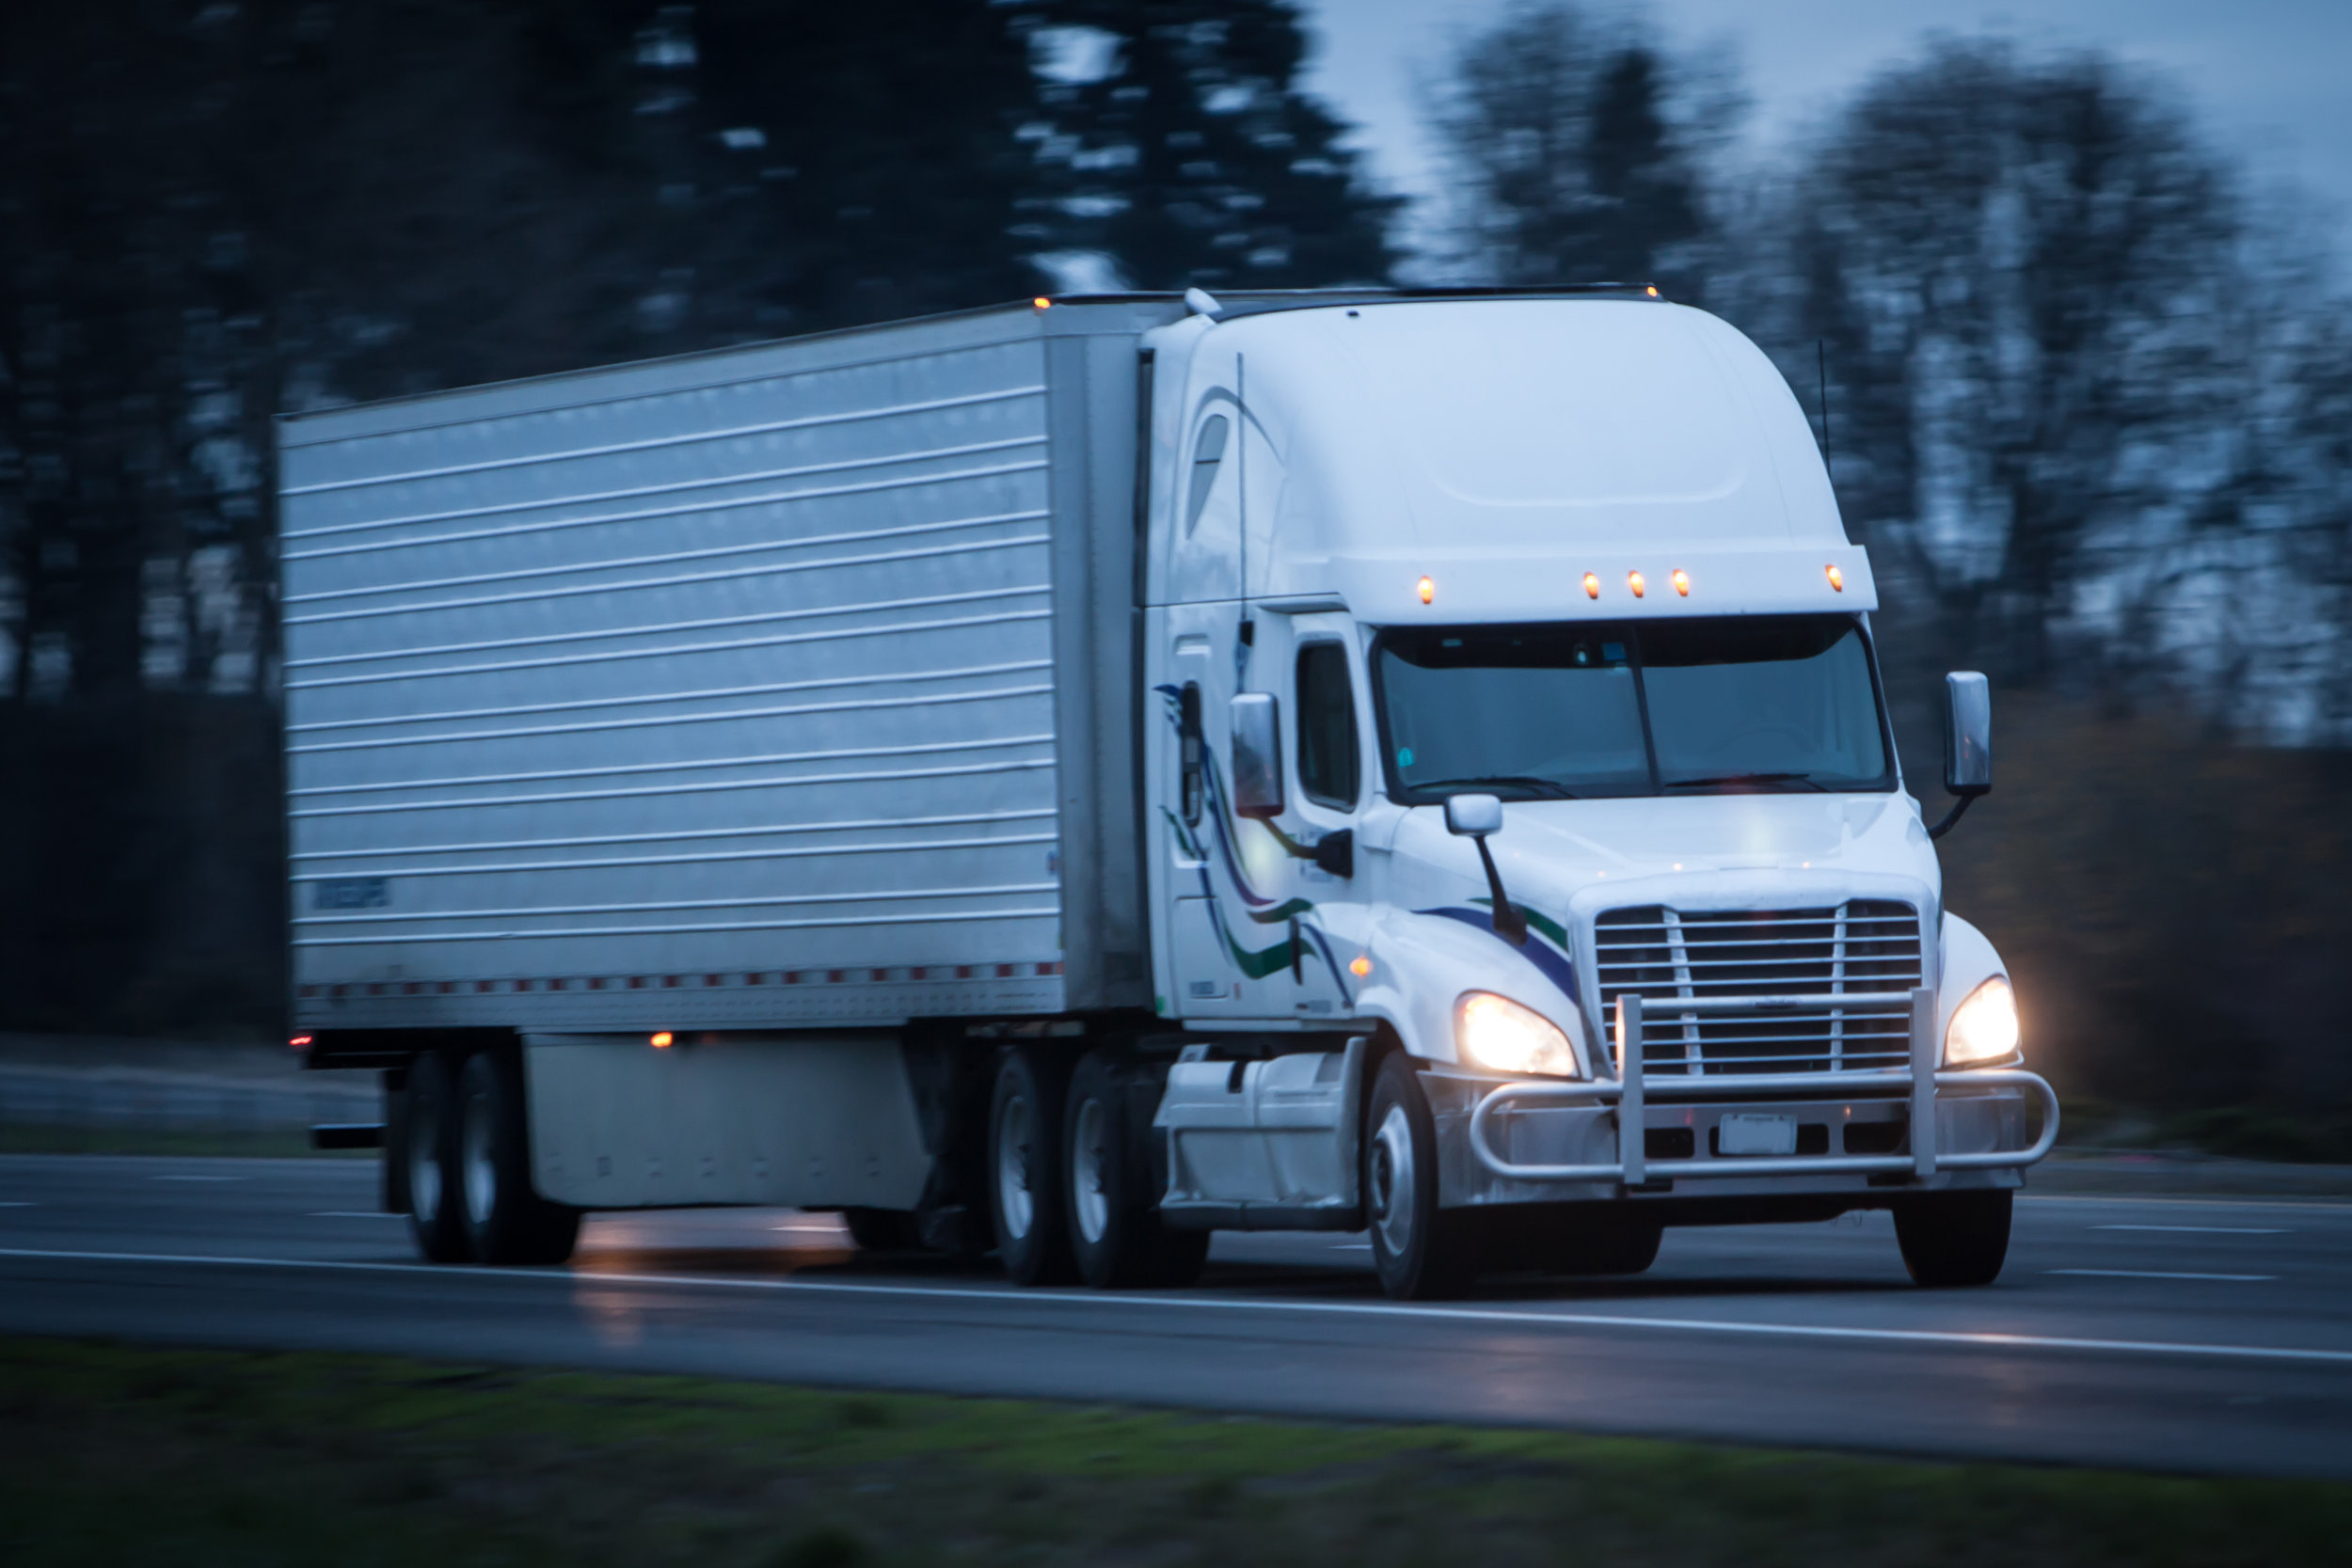 Multiple company drivers testified during the trial that the employer required them to drive in excess of HOS regulations and instructed them to falsify log books to cover up those violations.